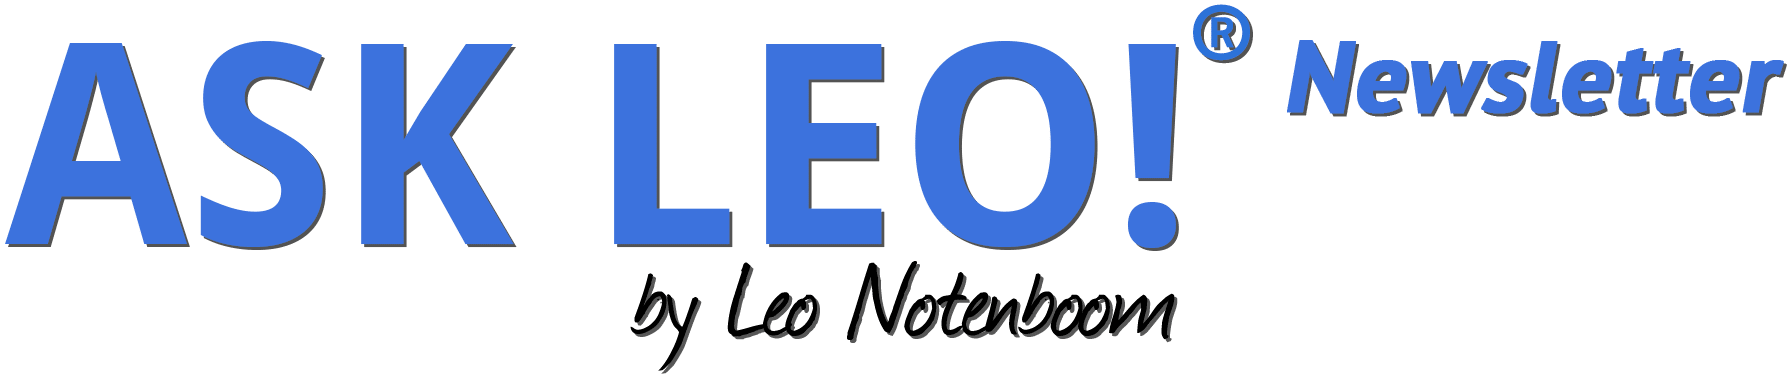 The Ask Leo! Newsletter